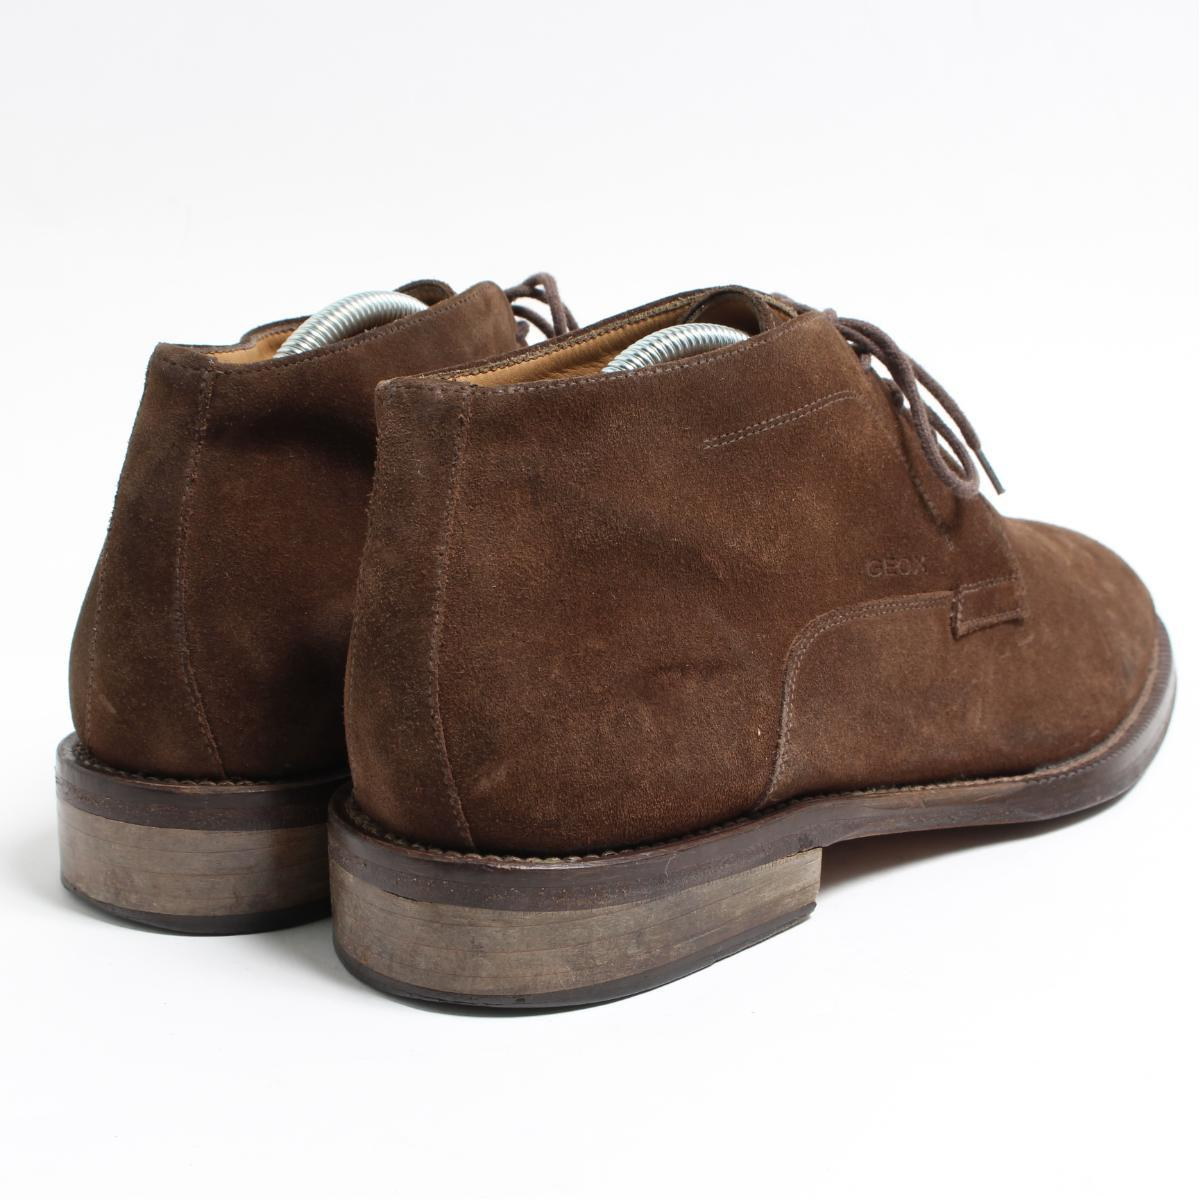 Product made in GEOX chukka boots Italy 42 men's 26.0cm bon6733